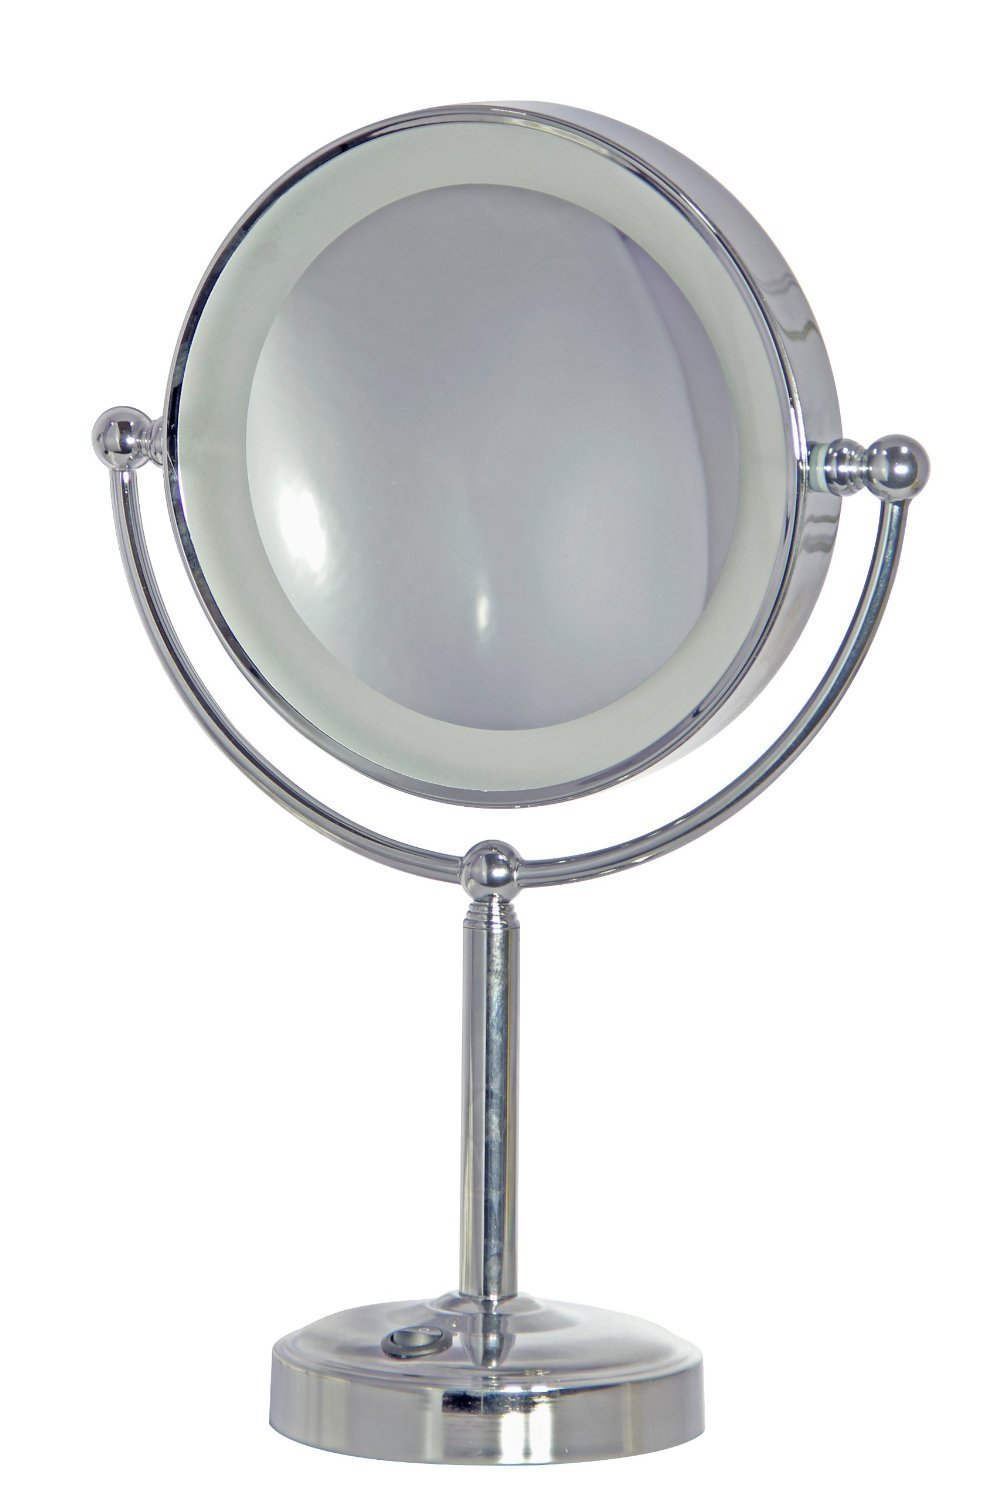 Daylight 24 502053-14 Cordless Rechargeable Make Up Mirror, Chrome Finish